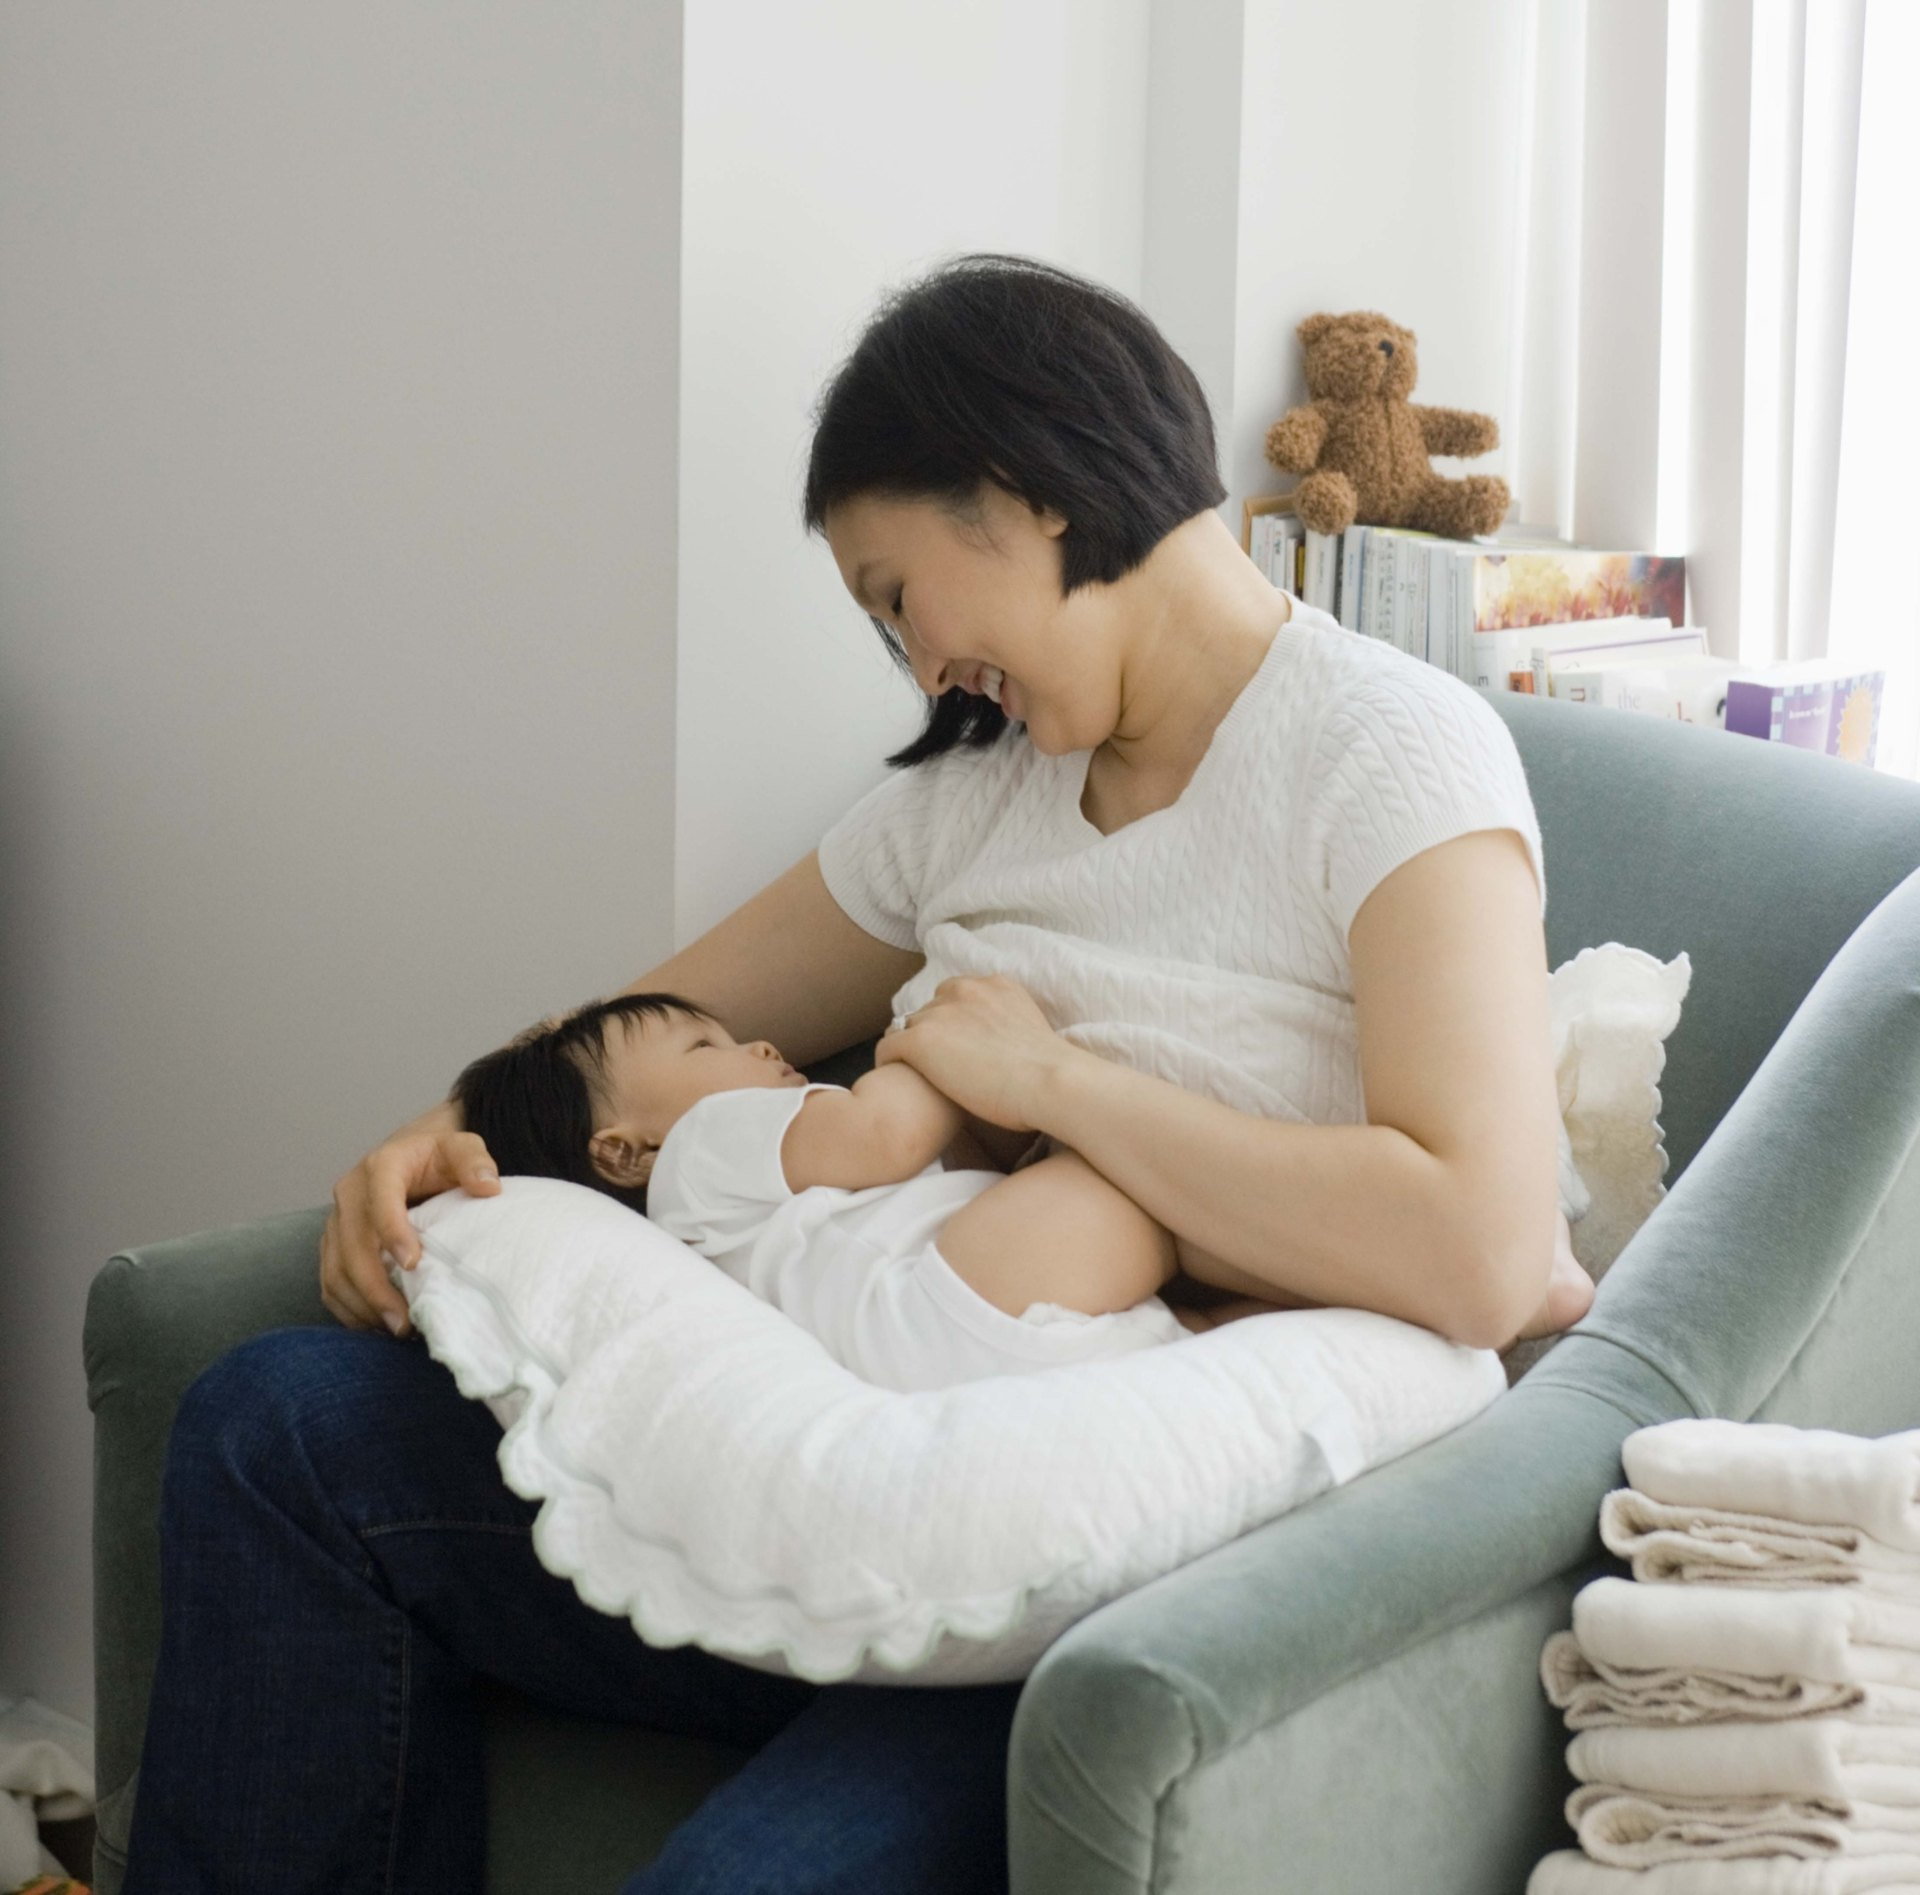 How to make breast milk fatter 93